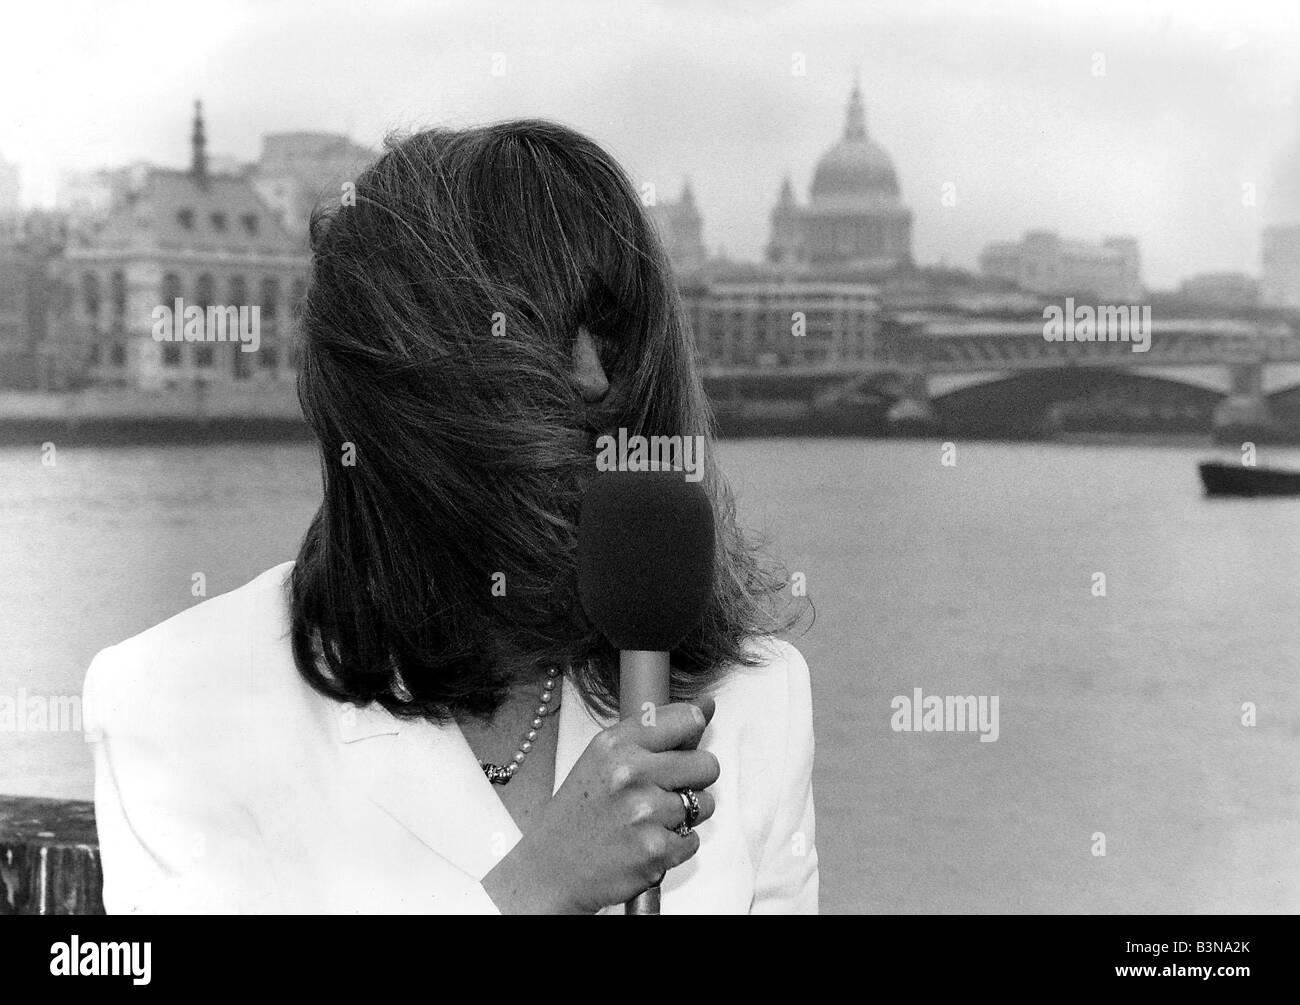 Caron Keating TV Presenter holding microphone hair blowing over her face - Stock Image